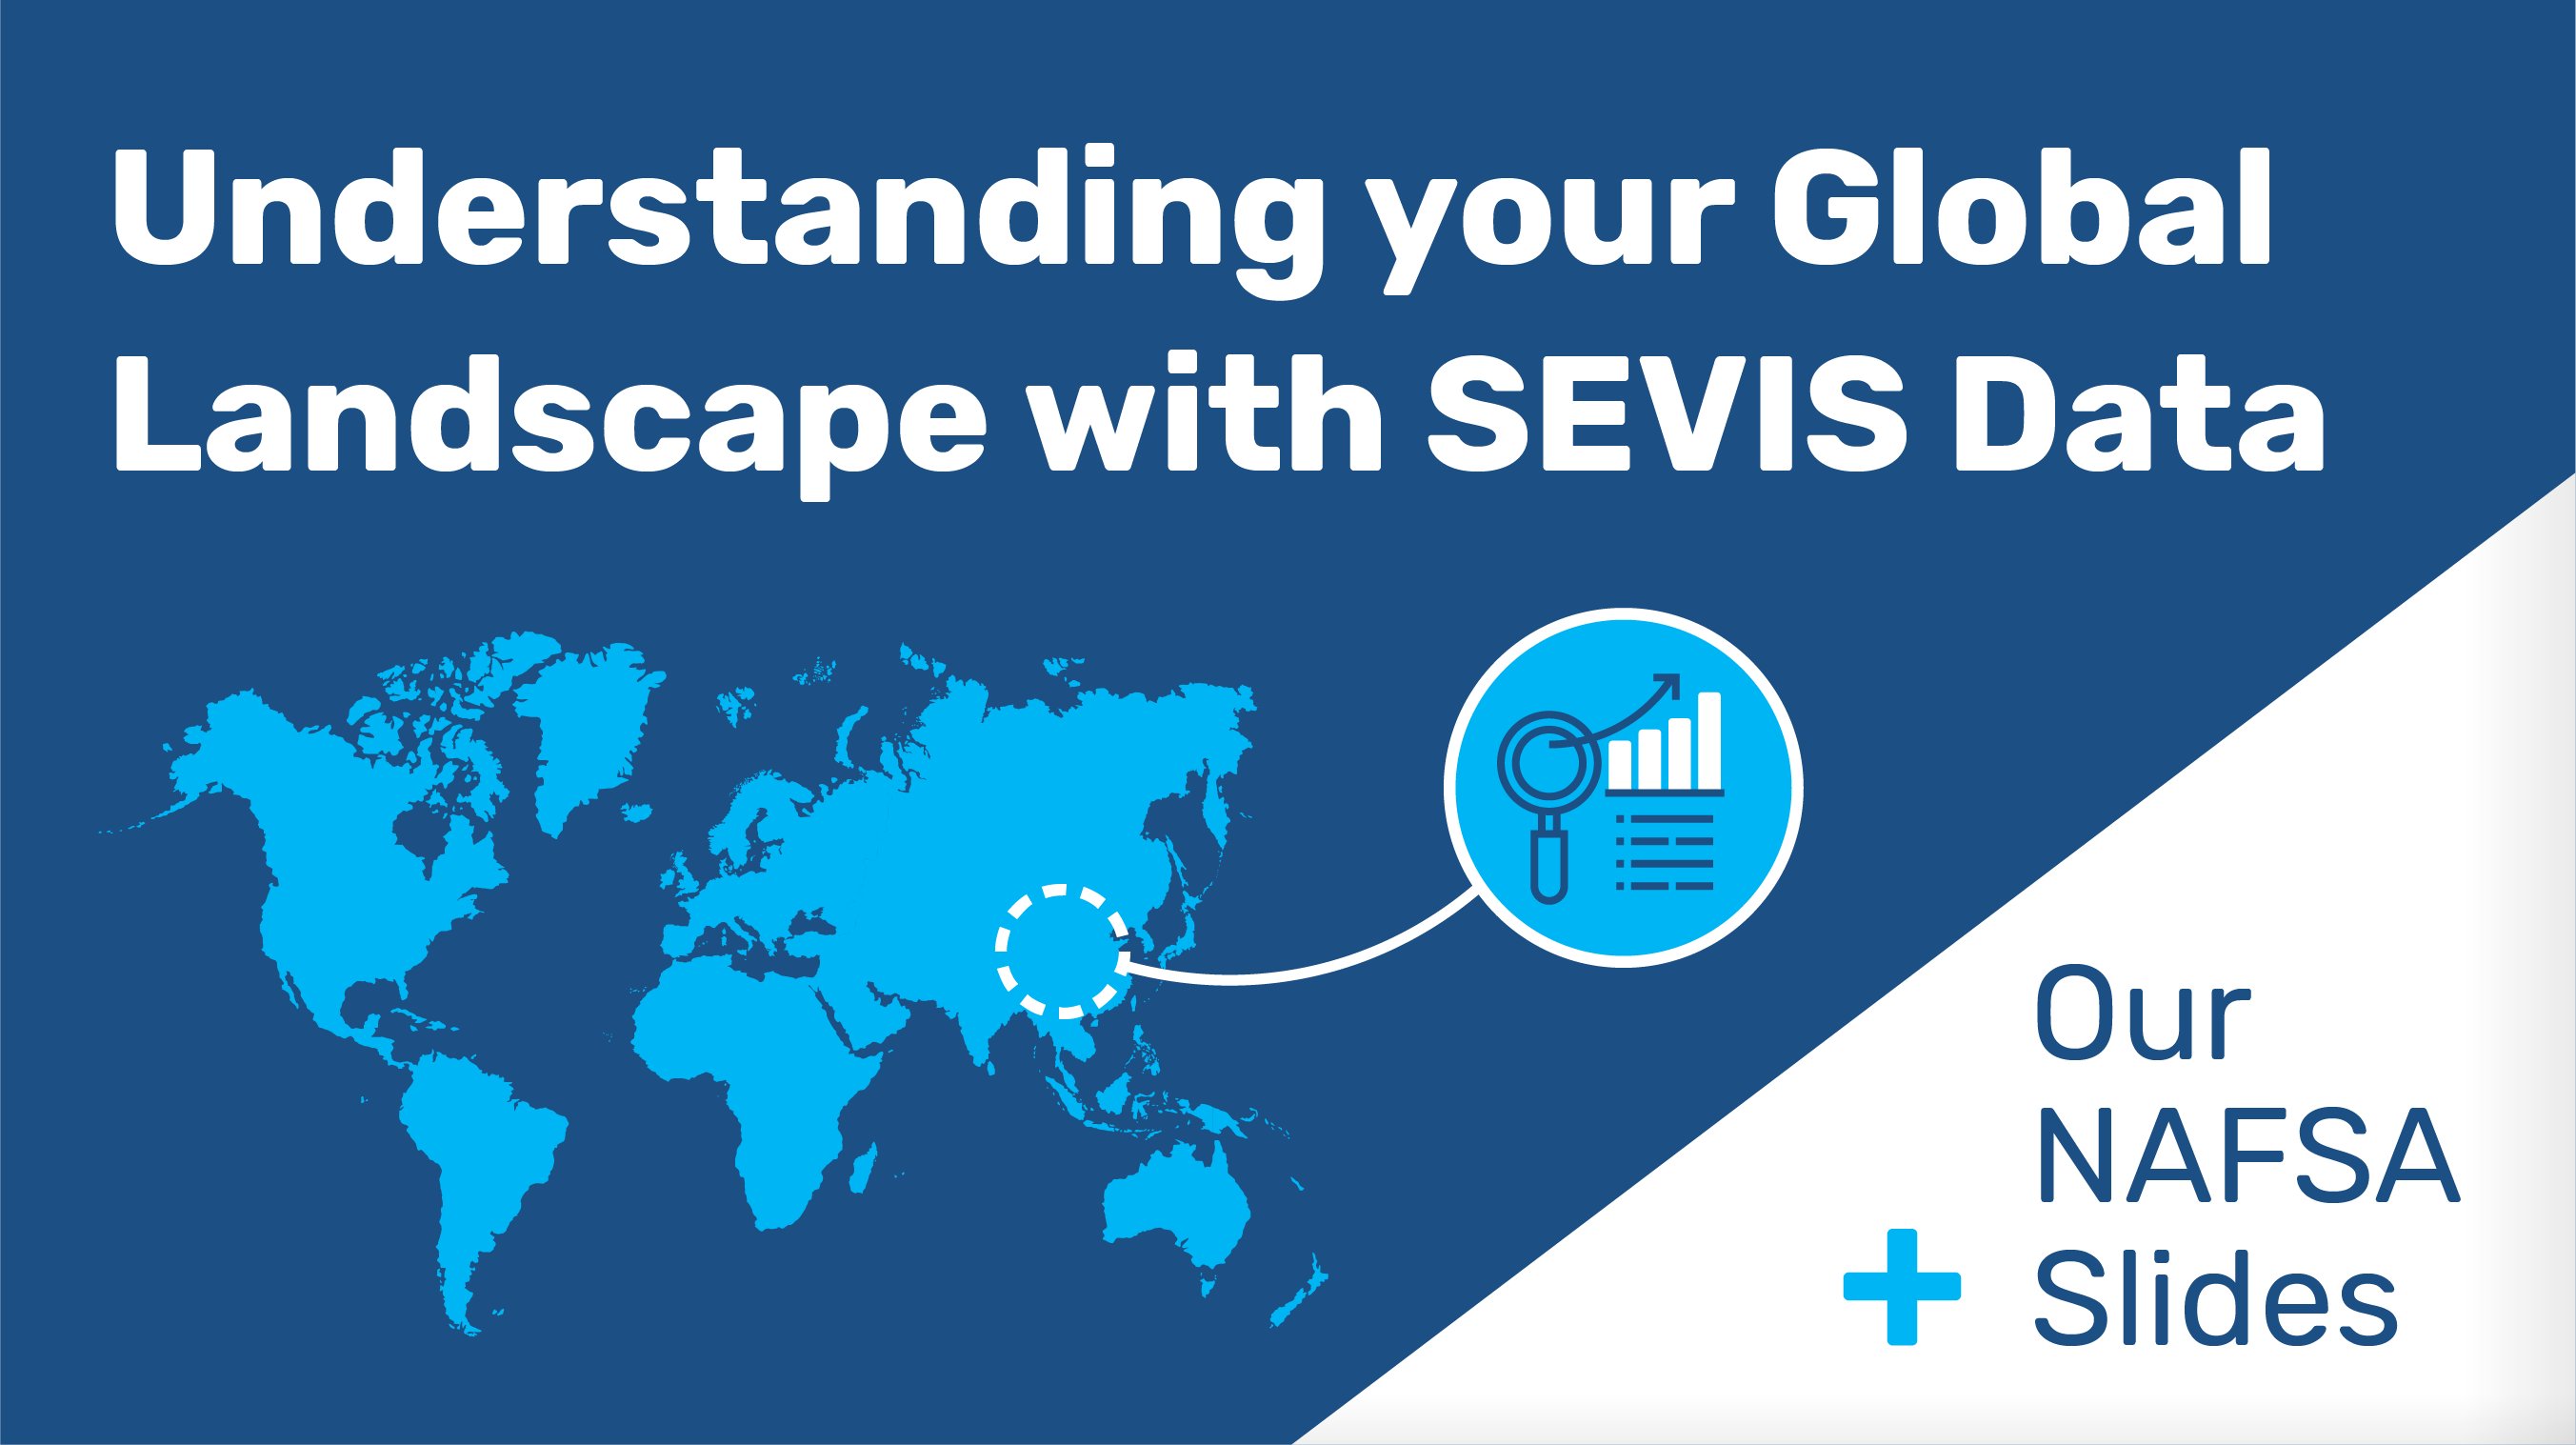 Understanding your Global Landscape with SEVIS Data